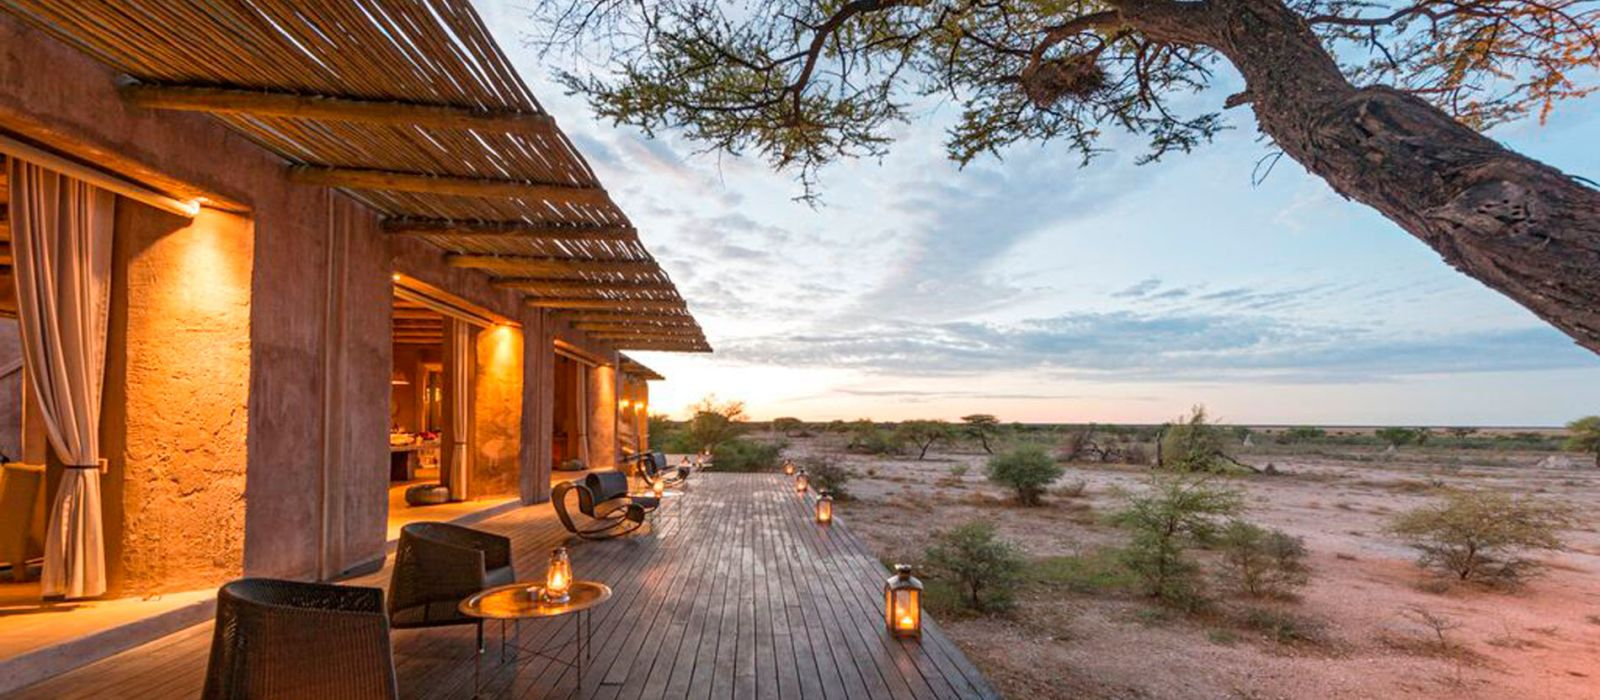 Hotel Onguma Plains Camp (The Fort) Namibia